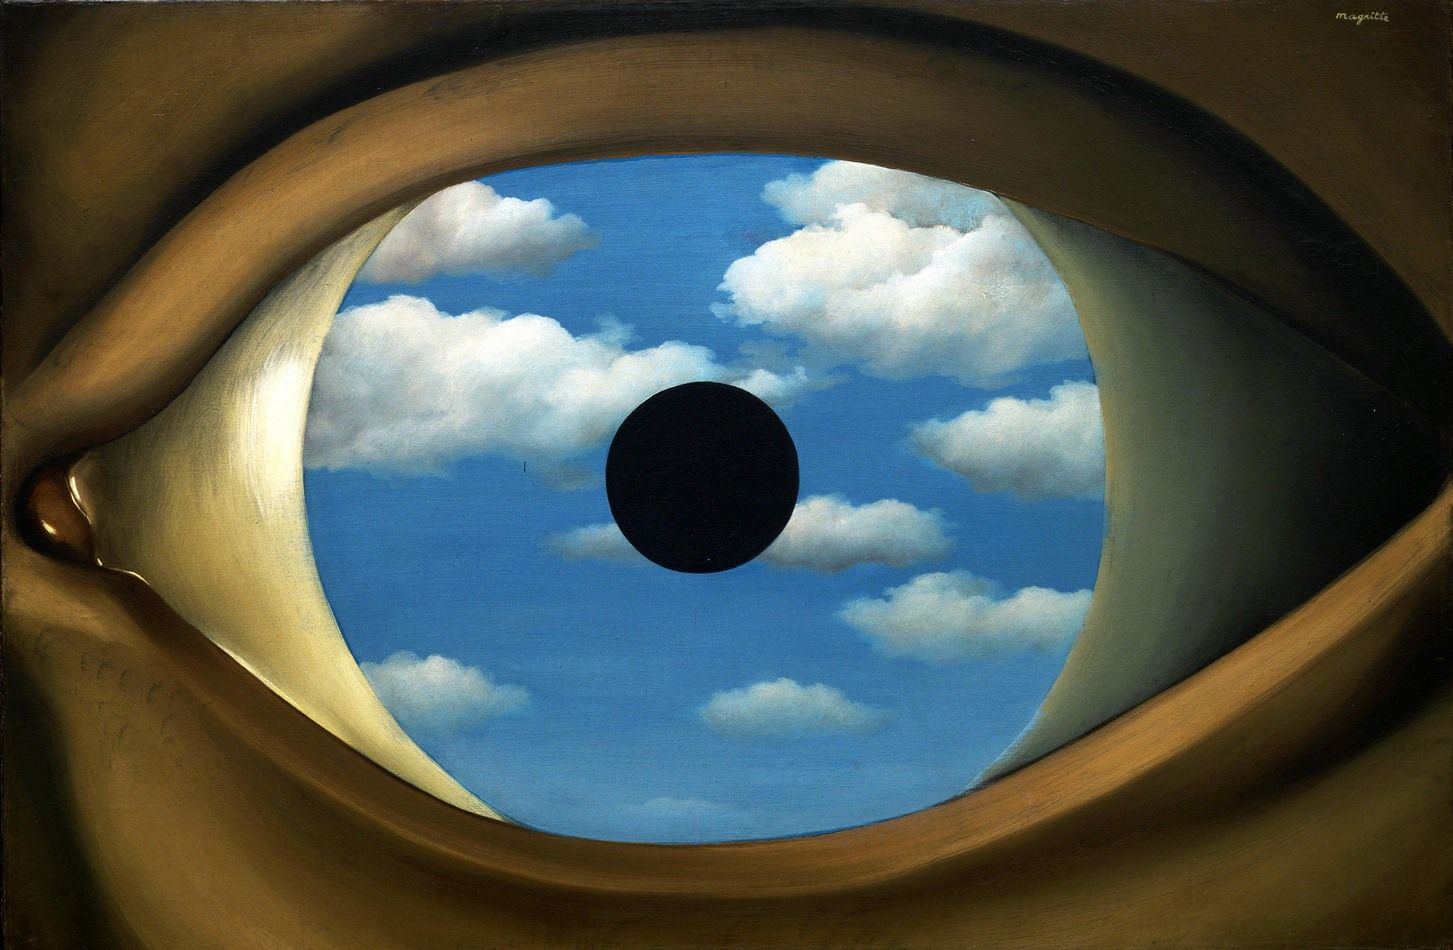 False Mirror Magritte Paintings